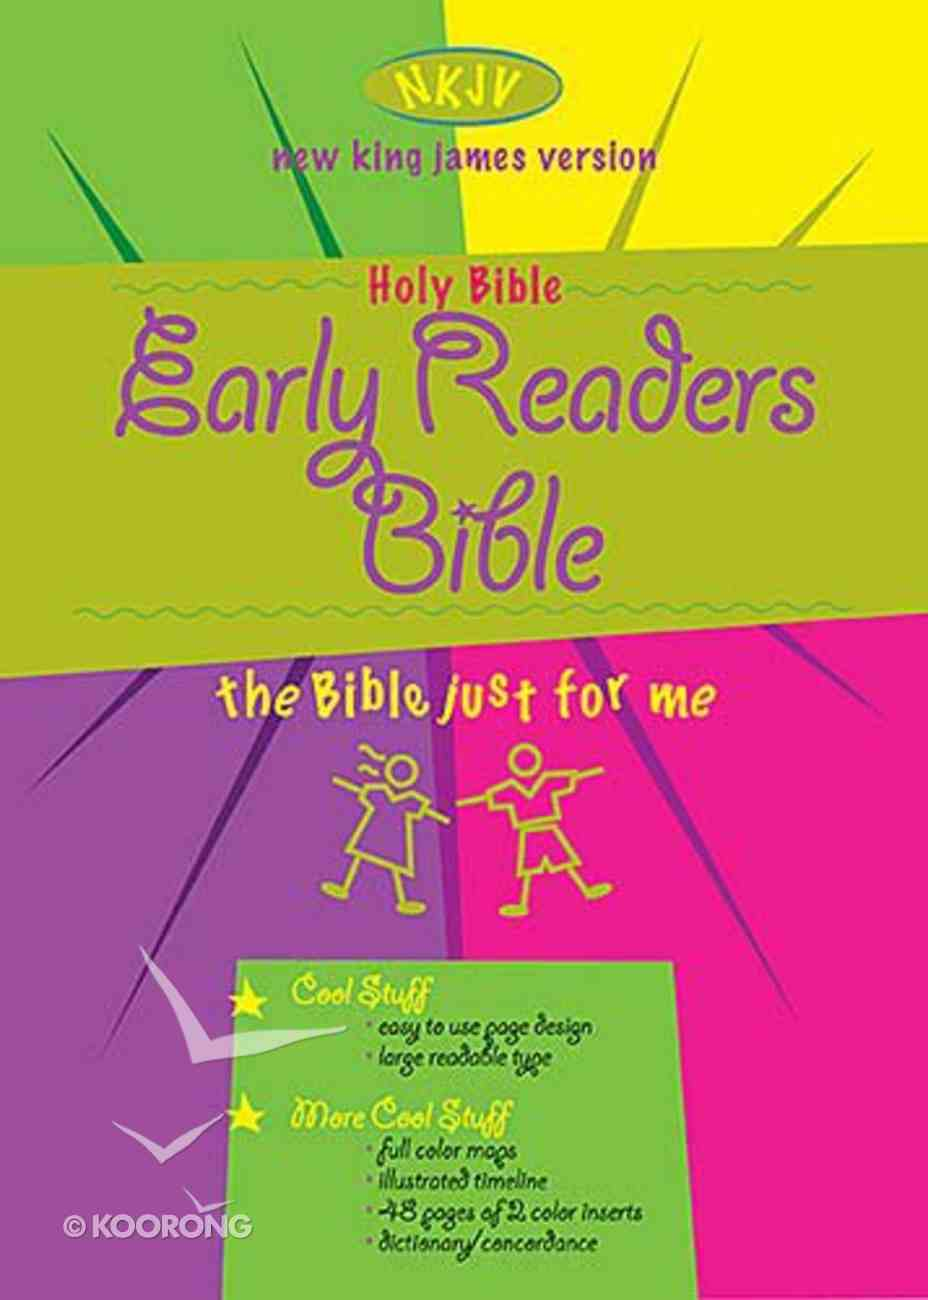 NKJV Early Readers Bible Lime Green Imitation Leather